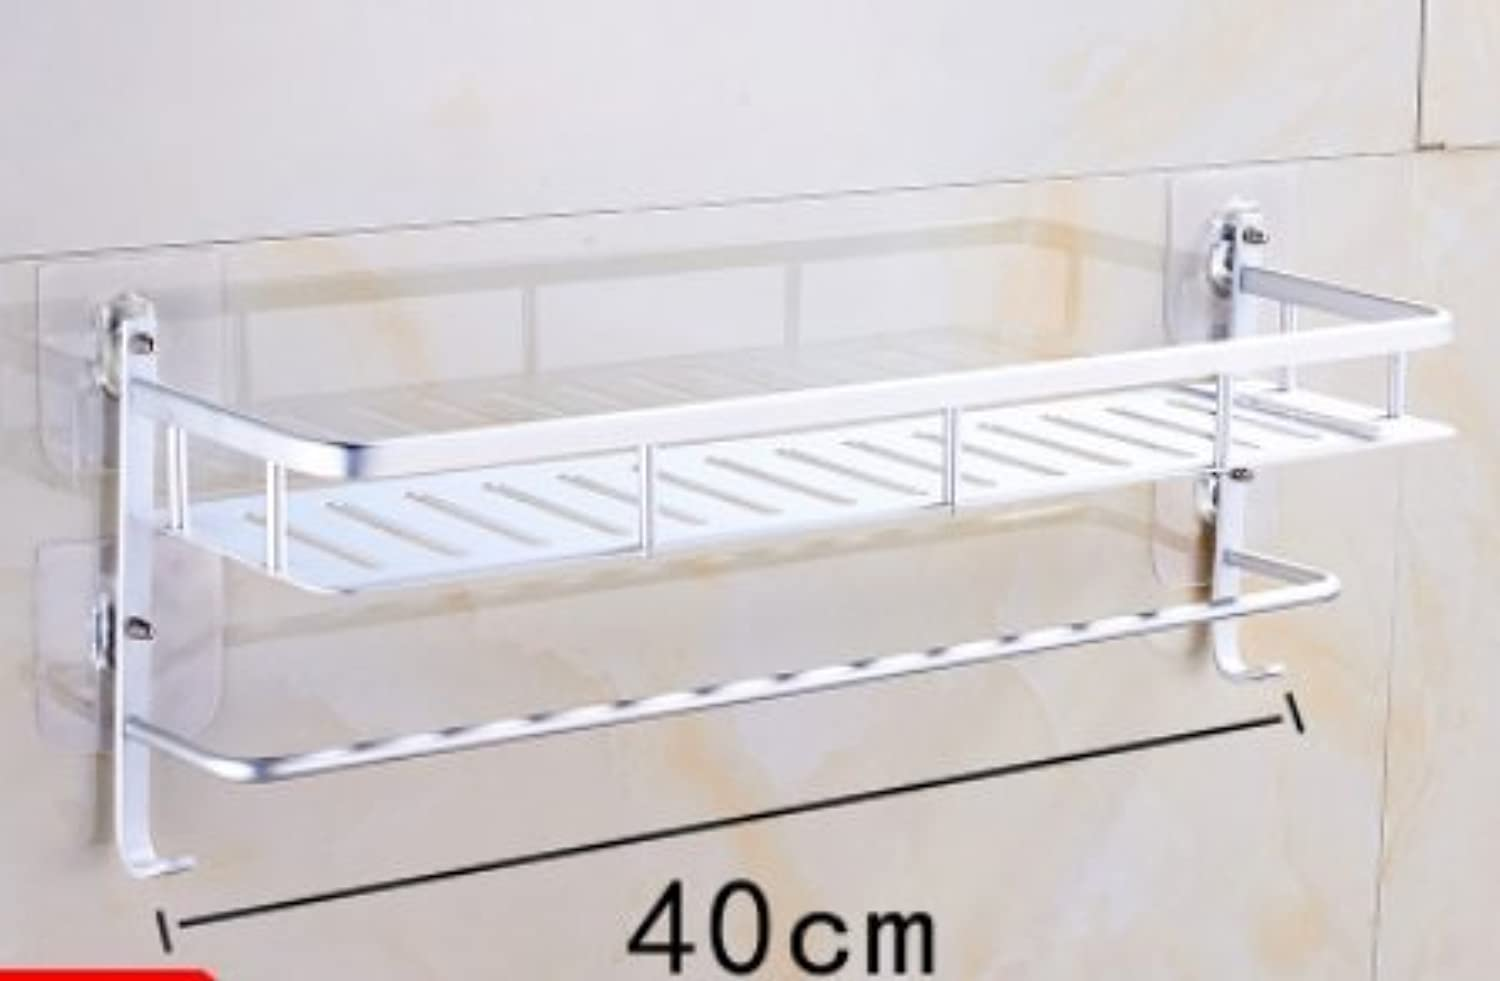 SHAN-Punch-free suction wall wc ,a40cm racks